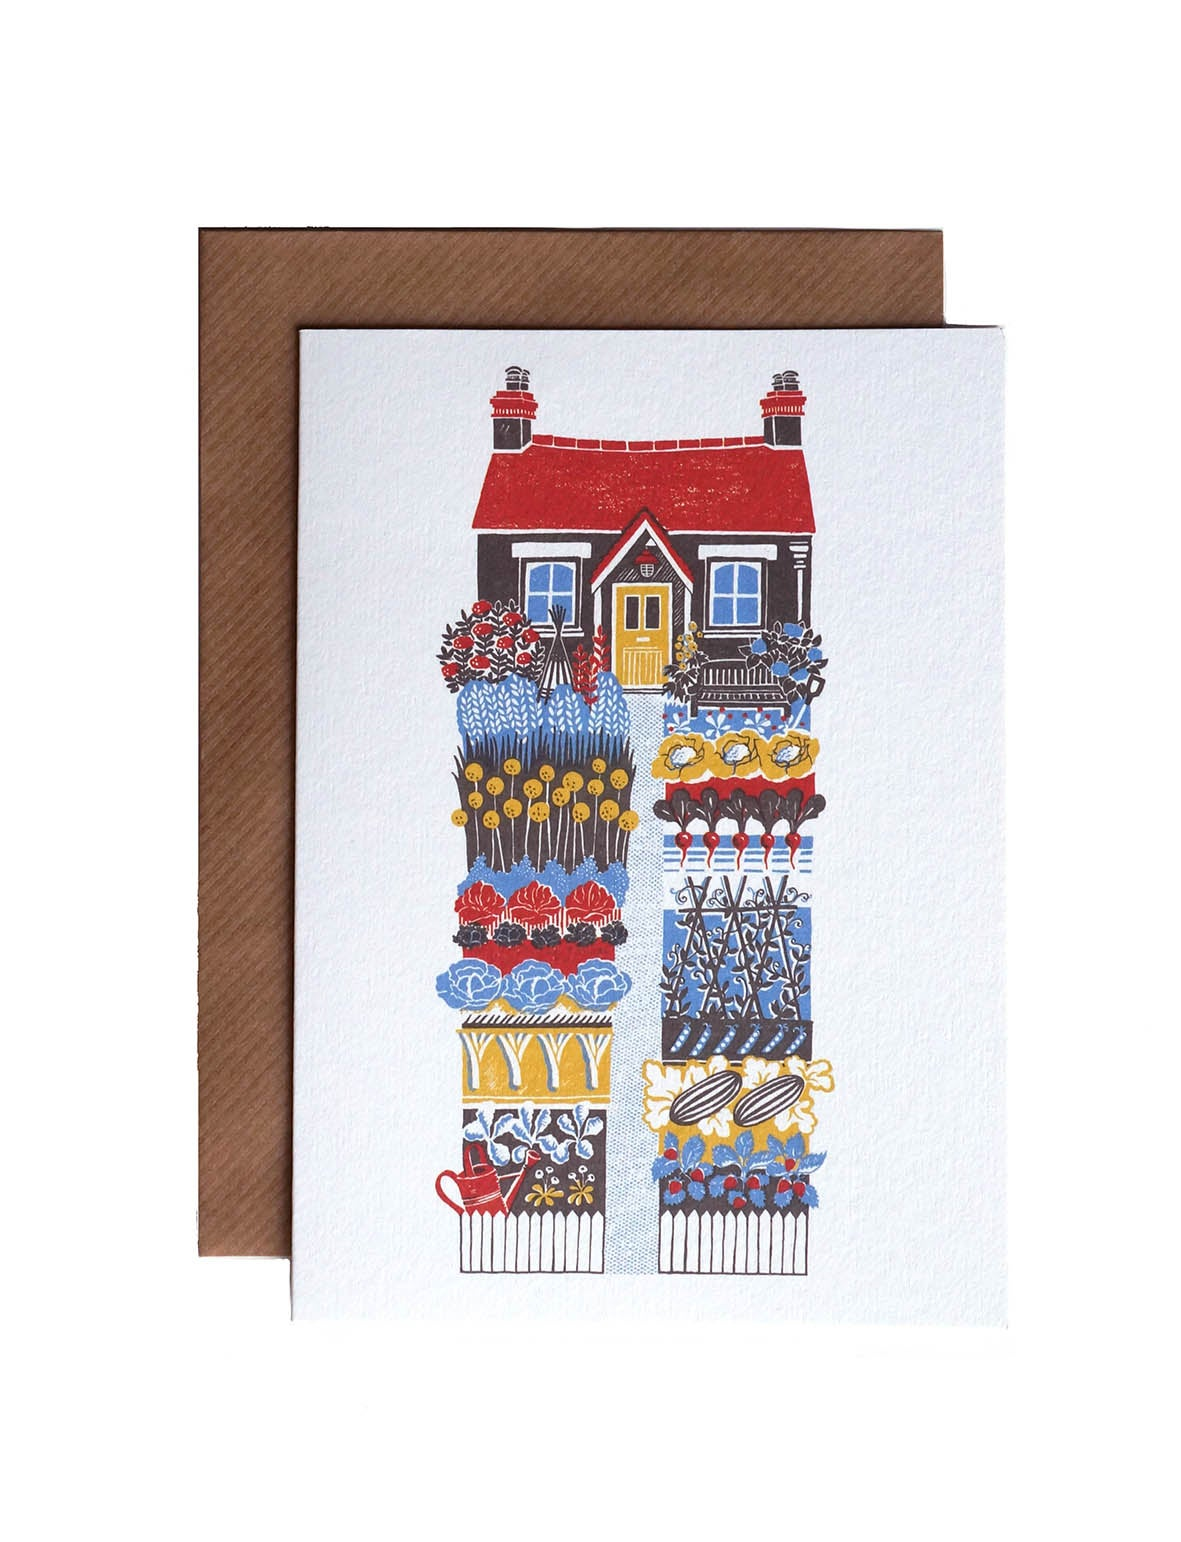 Image of The Vegetable Garden - Greetings Card